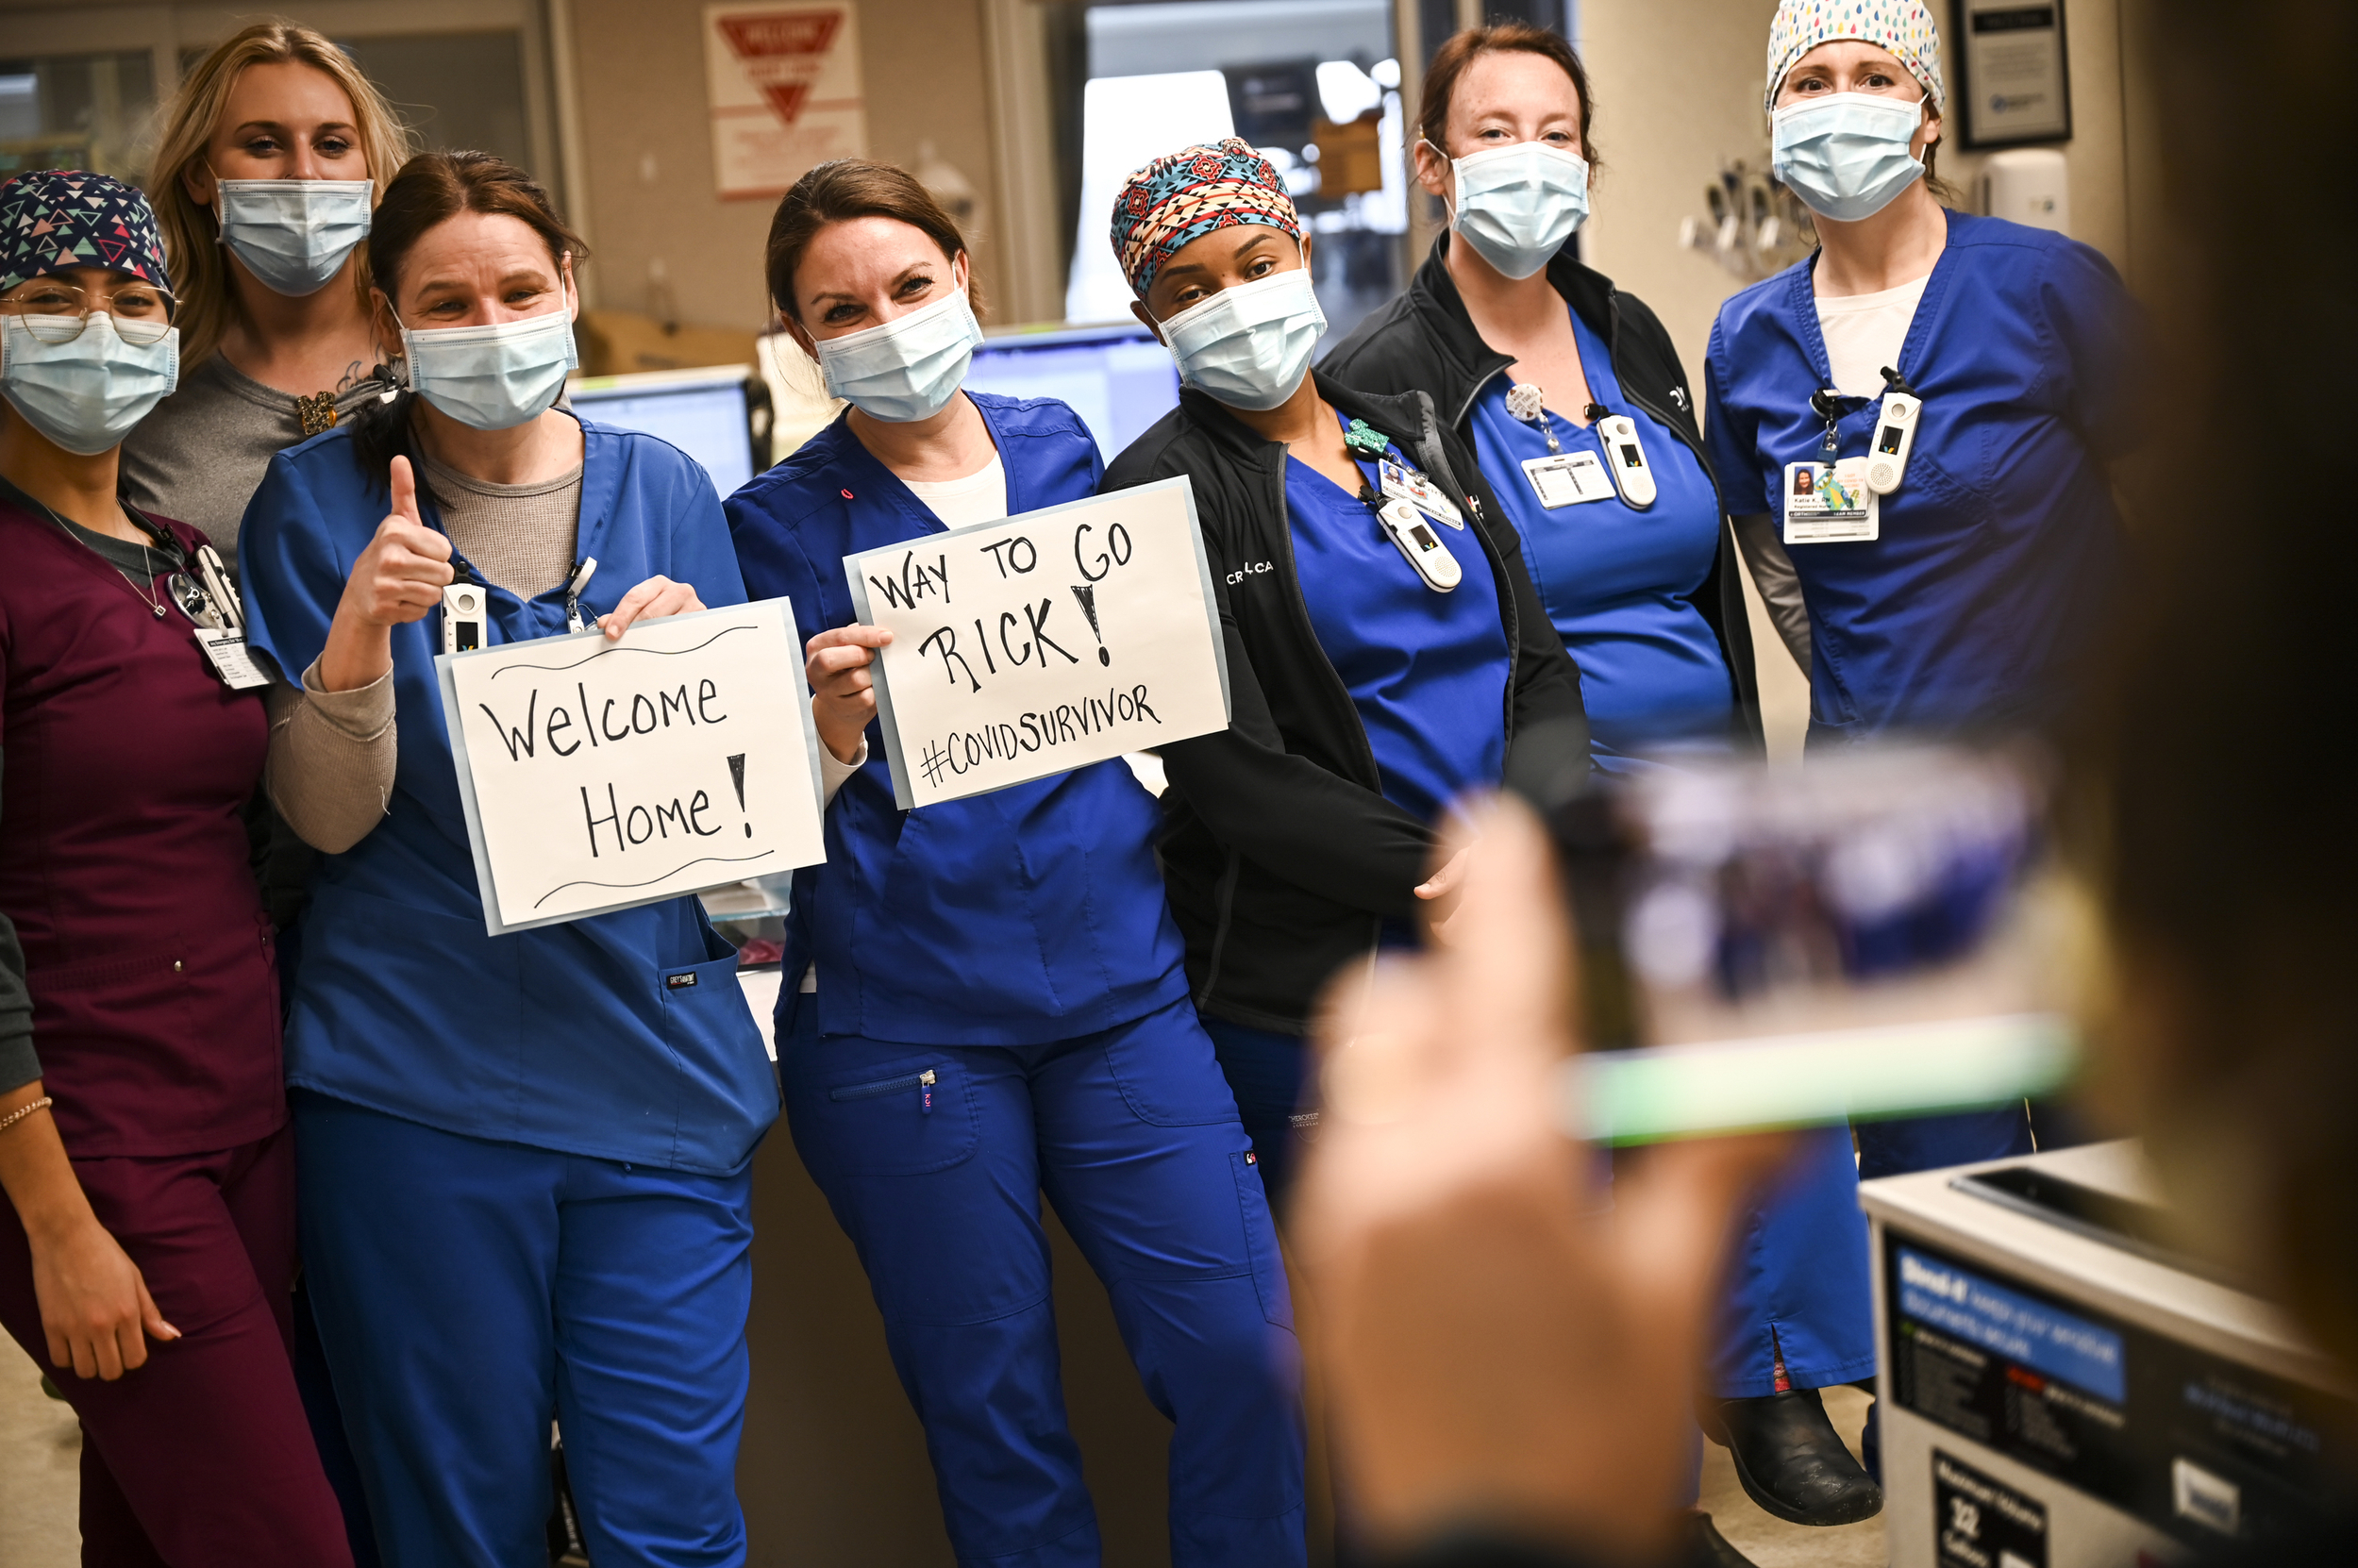 """ICU nurses celebrated the return home of patient Rick Ulrich, who spent weeks fighting for his life. When Ulrich sat up for the first time, cheers broke out in the unit. """"We get excited for very small things,"""" Vilione said. """"But this is a huge thing in his life."""""""